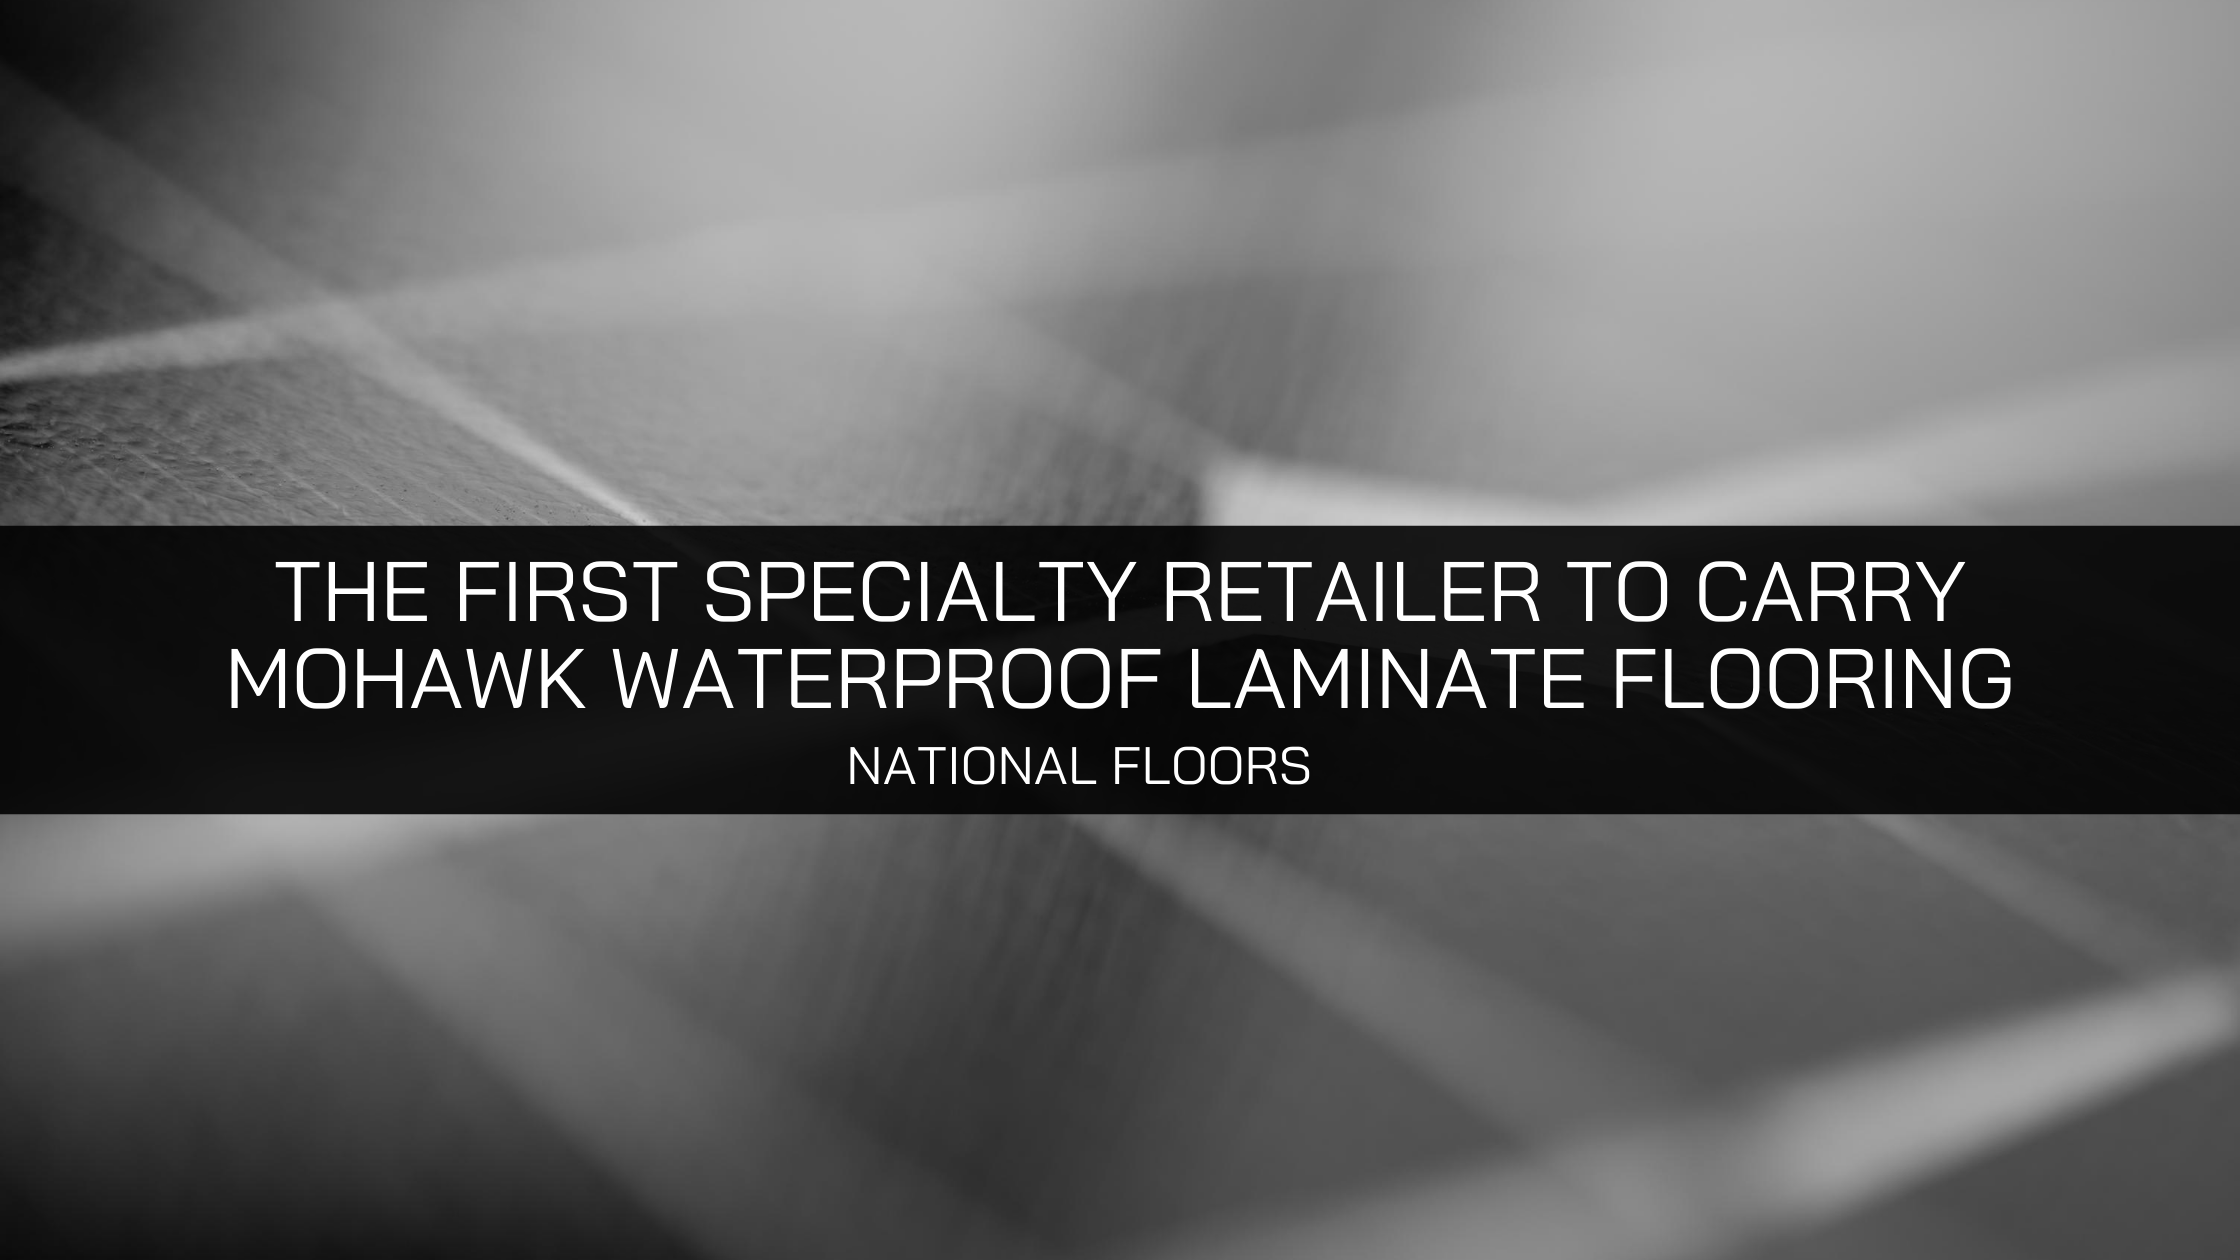 National Floors